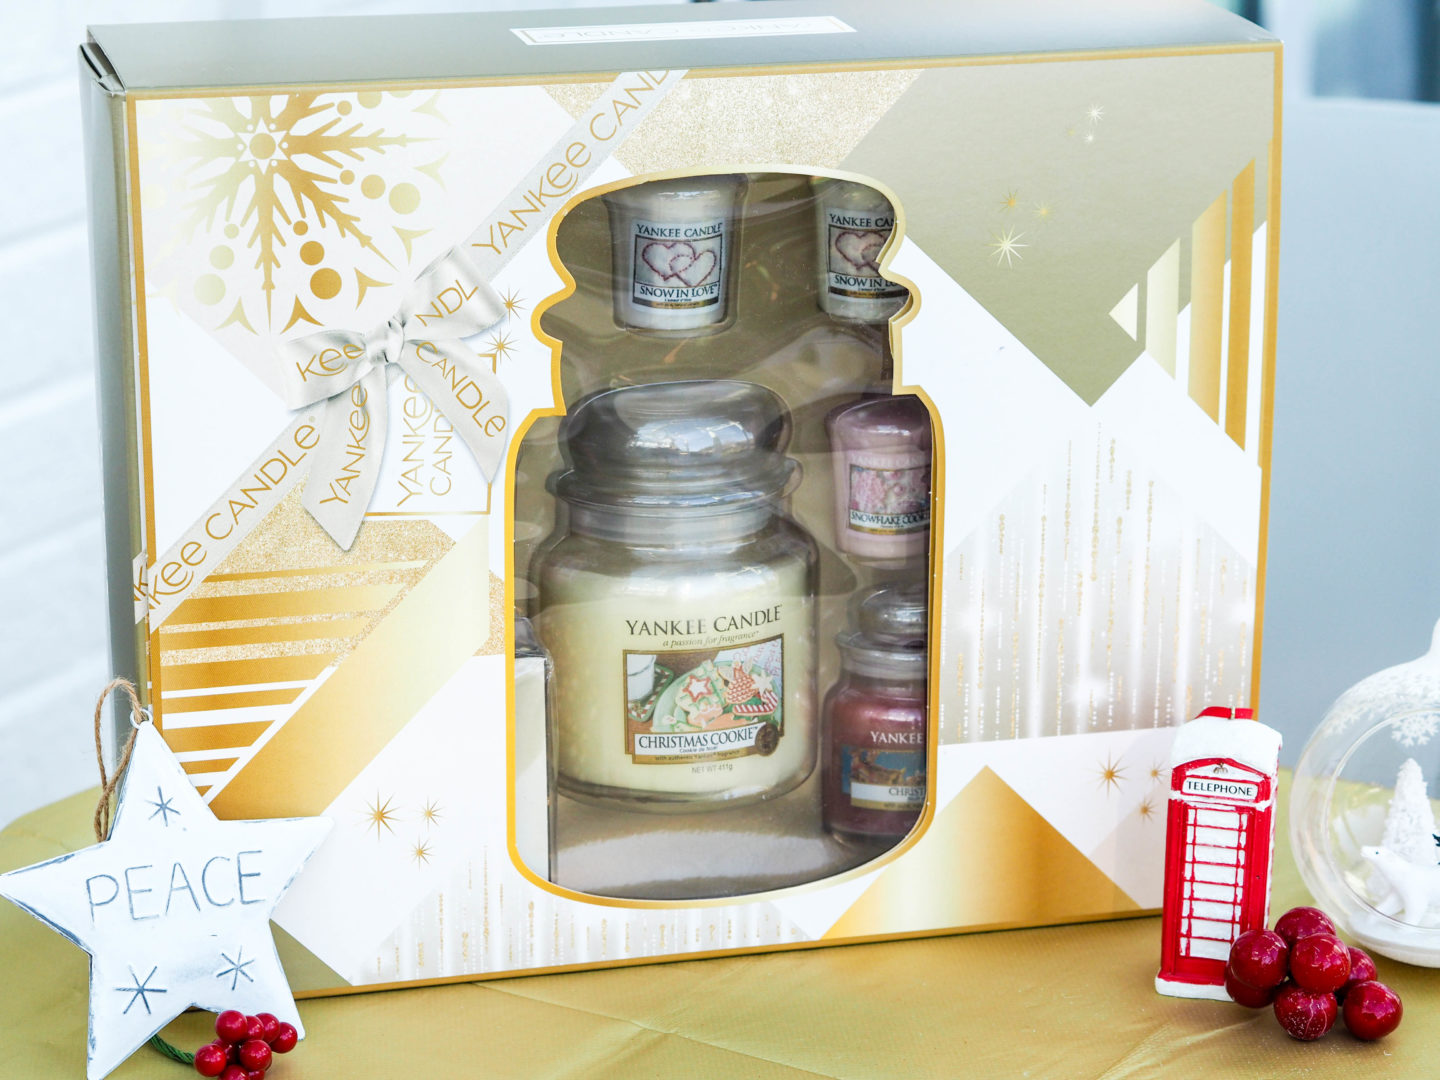 Choosing the perfect Gift – 50 days of Christmas with Boots